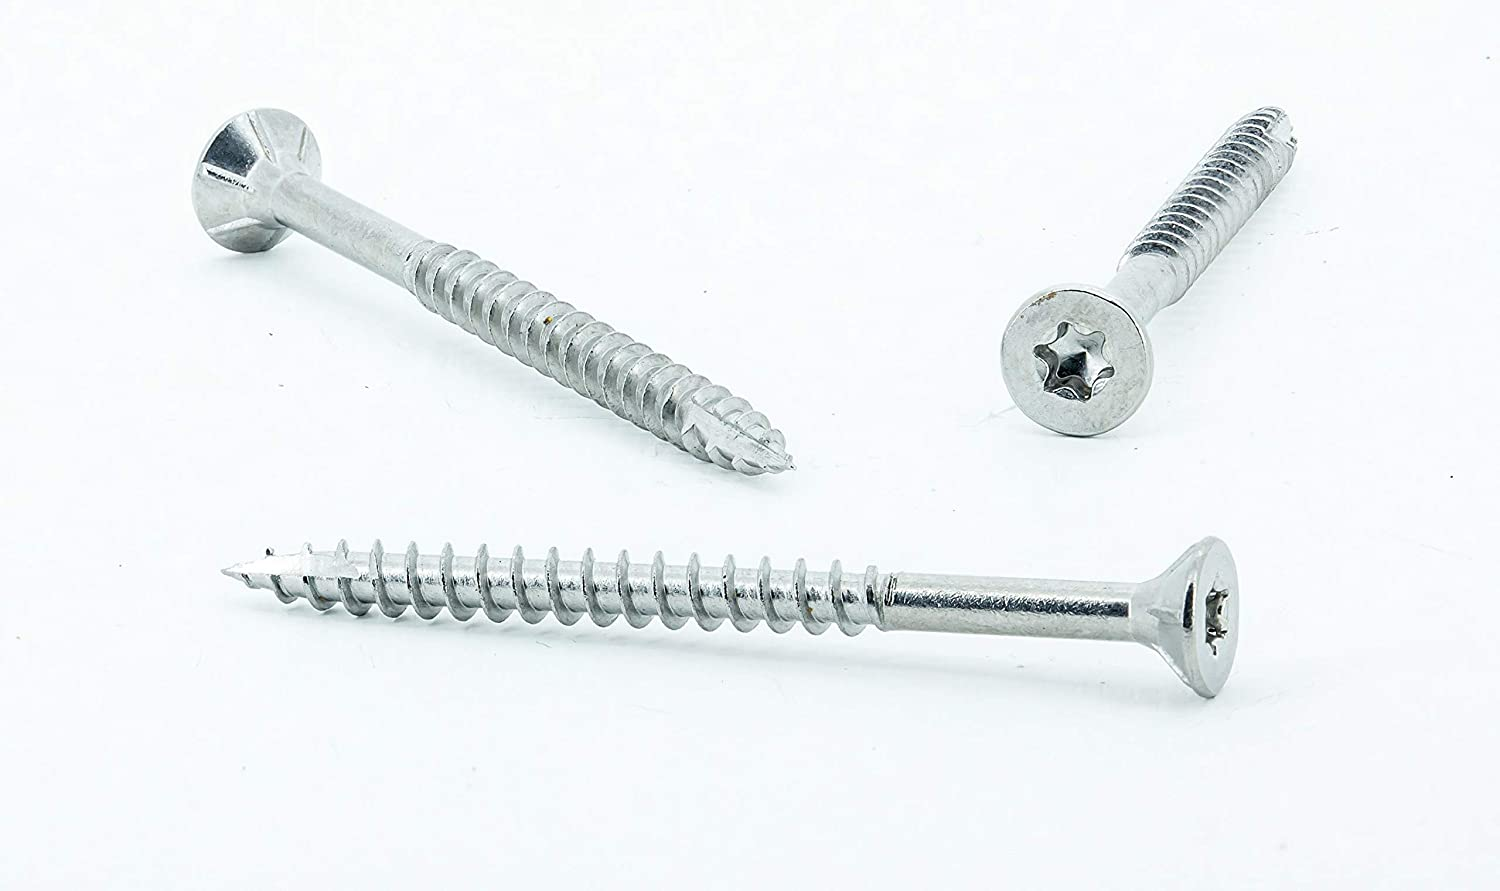 #6-32 X 3//4 Shoulder Screws Slotted Drive 250pcs Ships Free in USA by Aspen Fasteners AFC033-632X34-00250 Stainless Steel